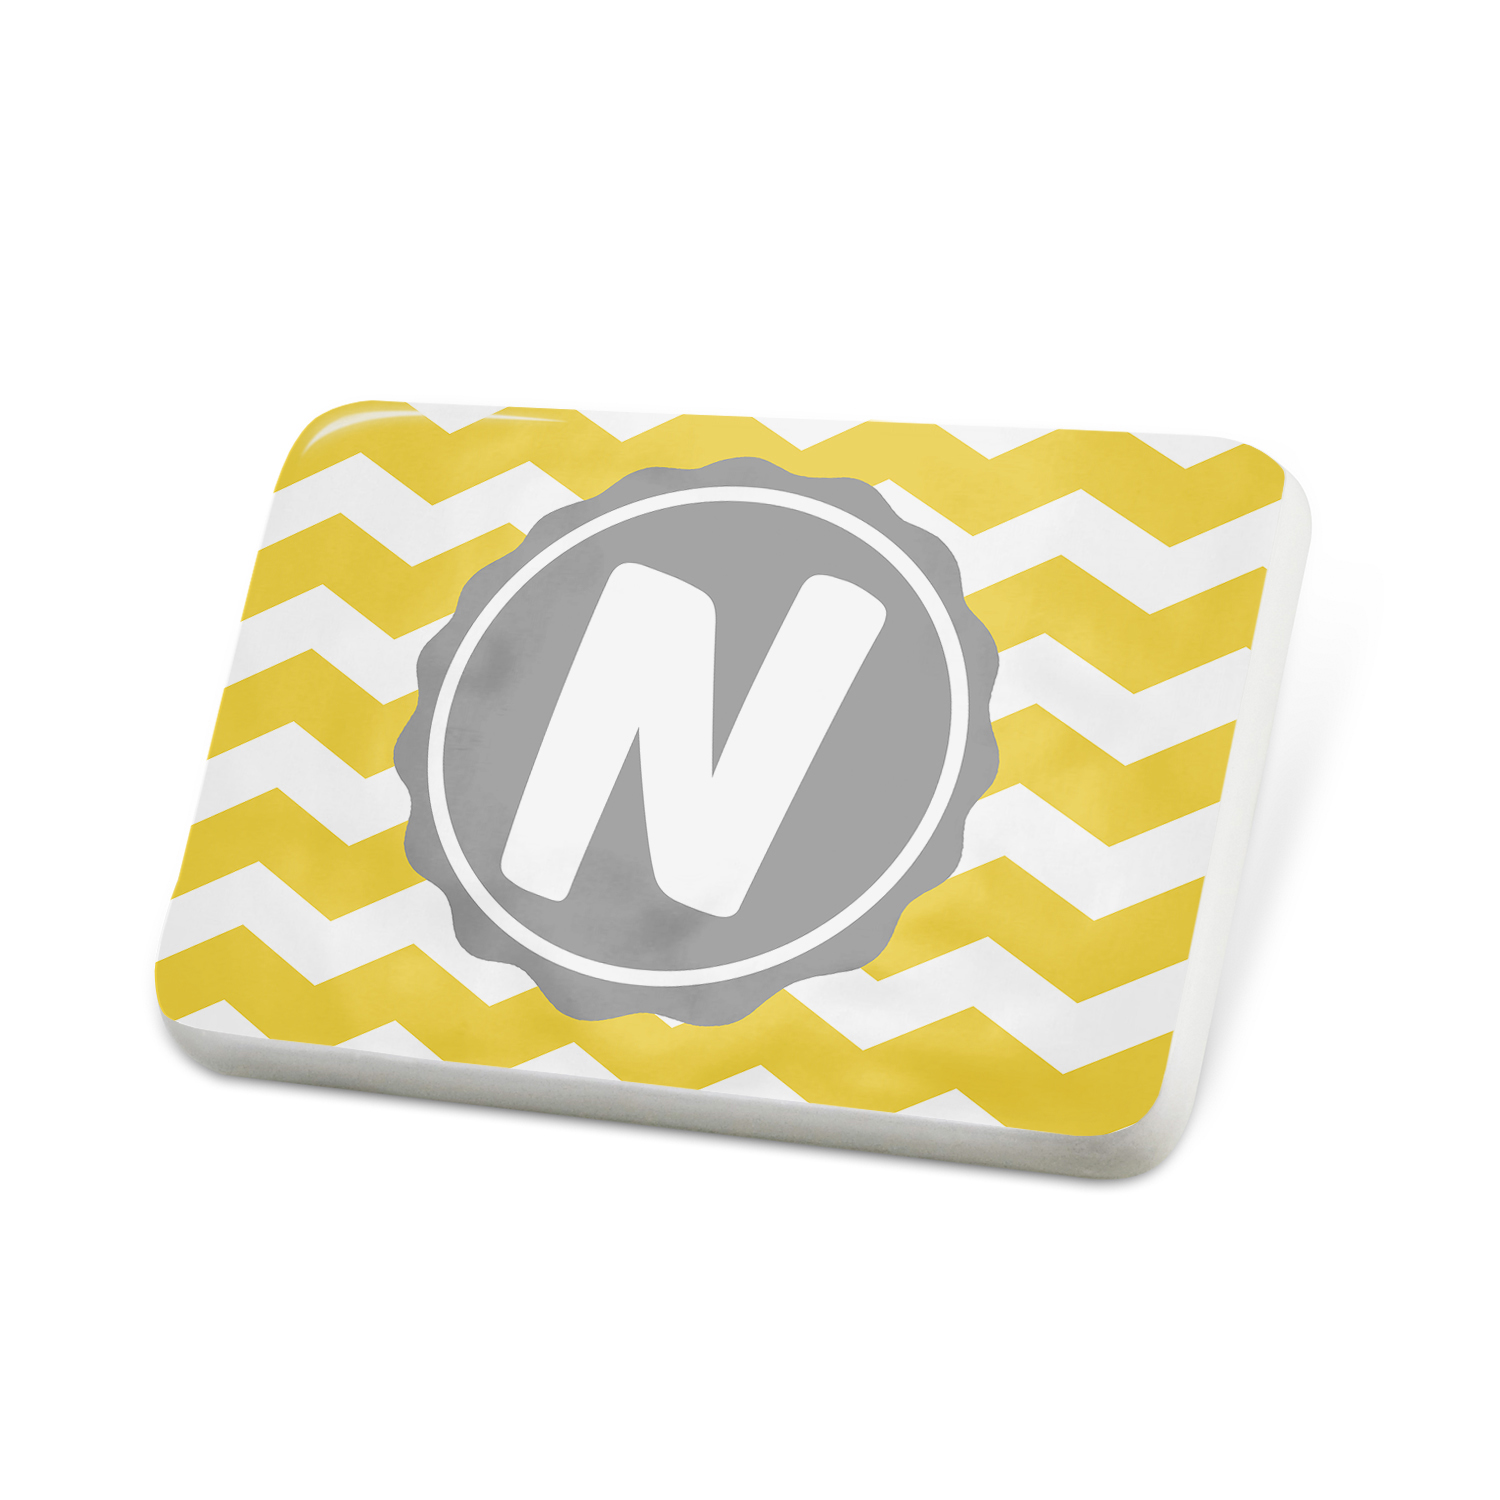 Porcelein Pin Monogram N Yellow Grey Chevron Lapel Badge � NEONBLOND by NEONBLOND